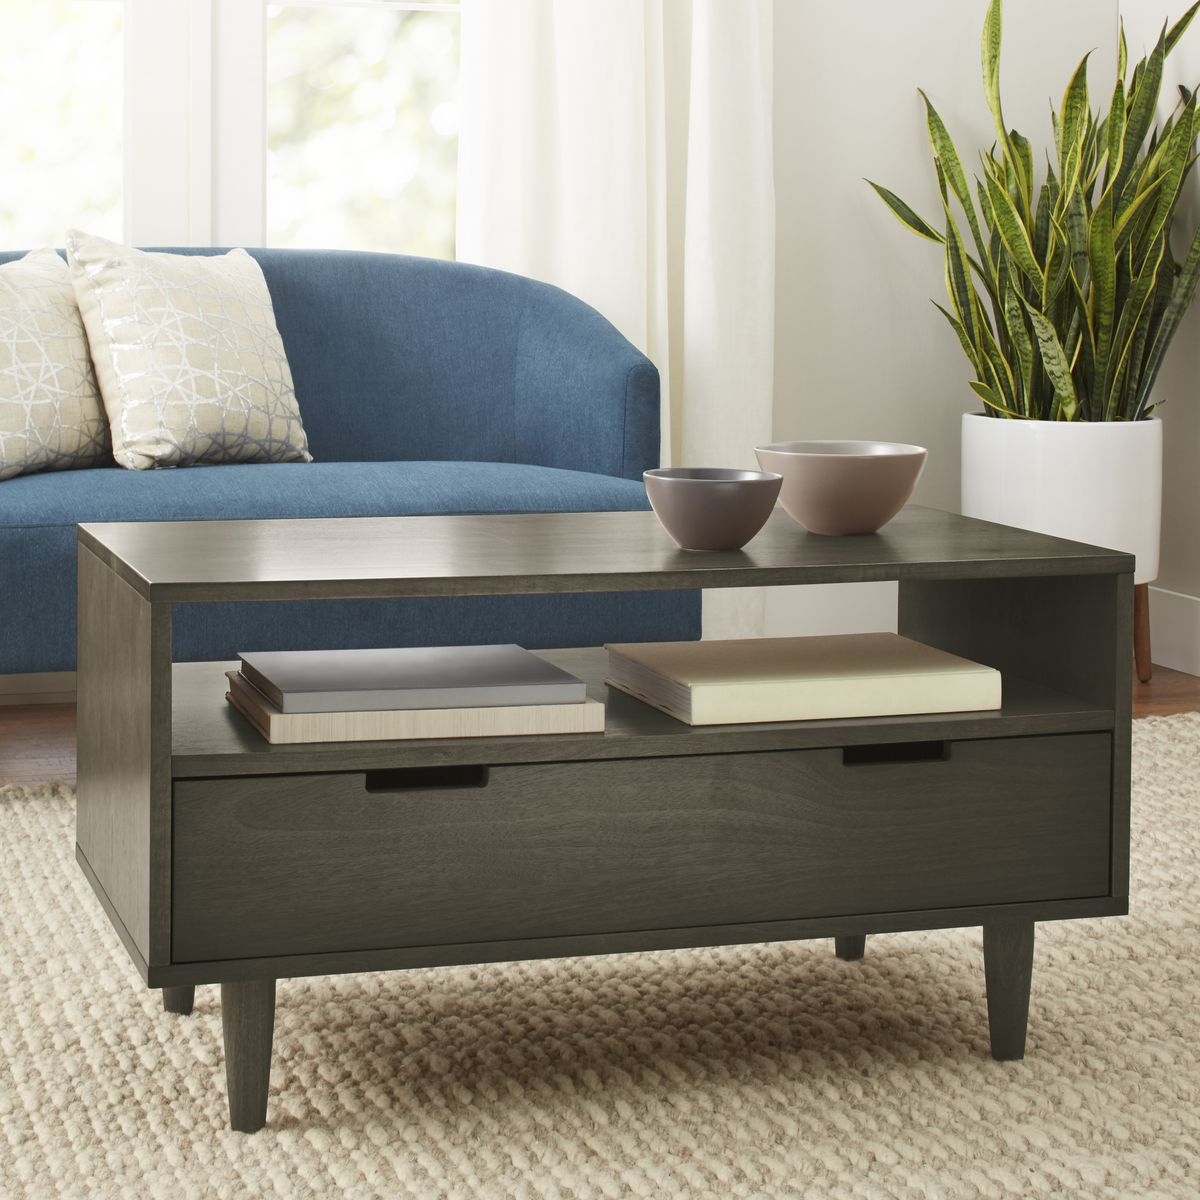 Best Coffee Tables Under $300